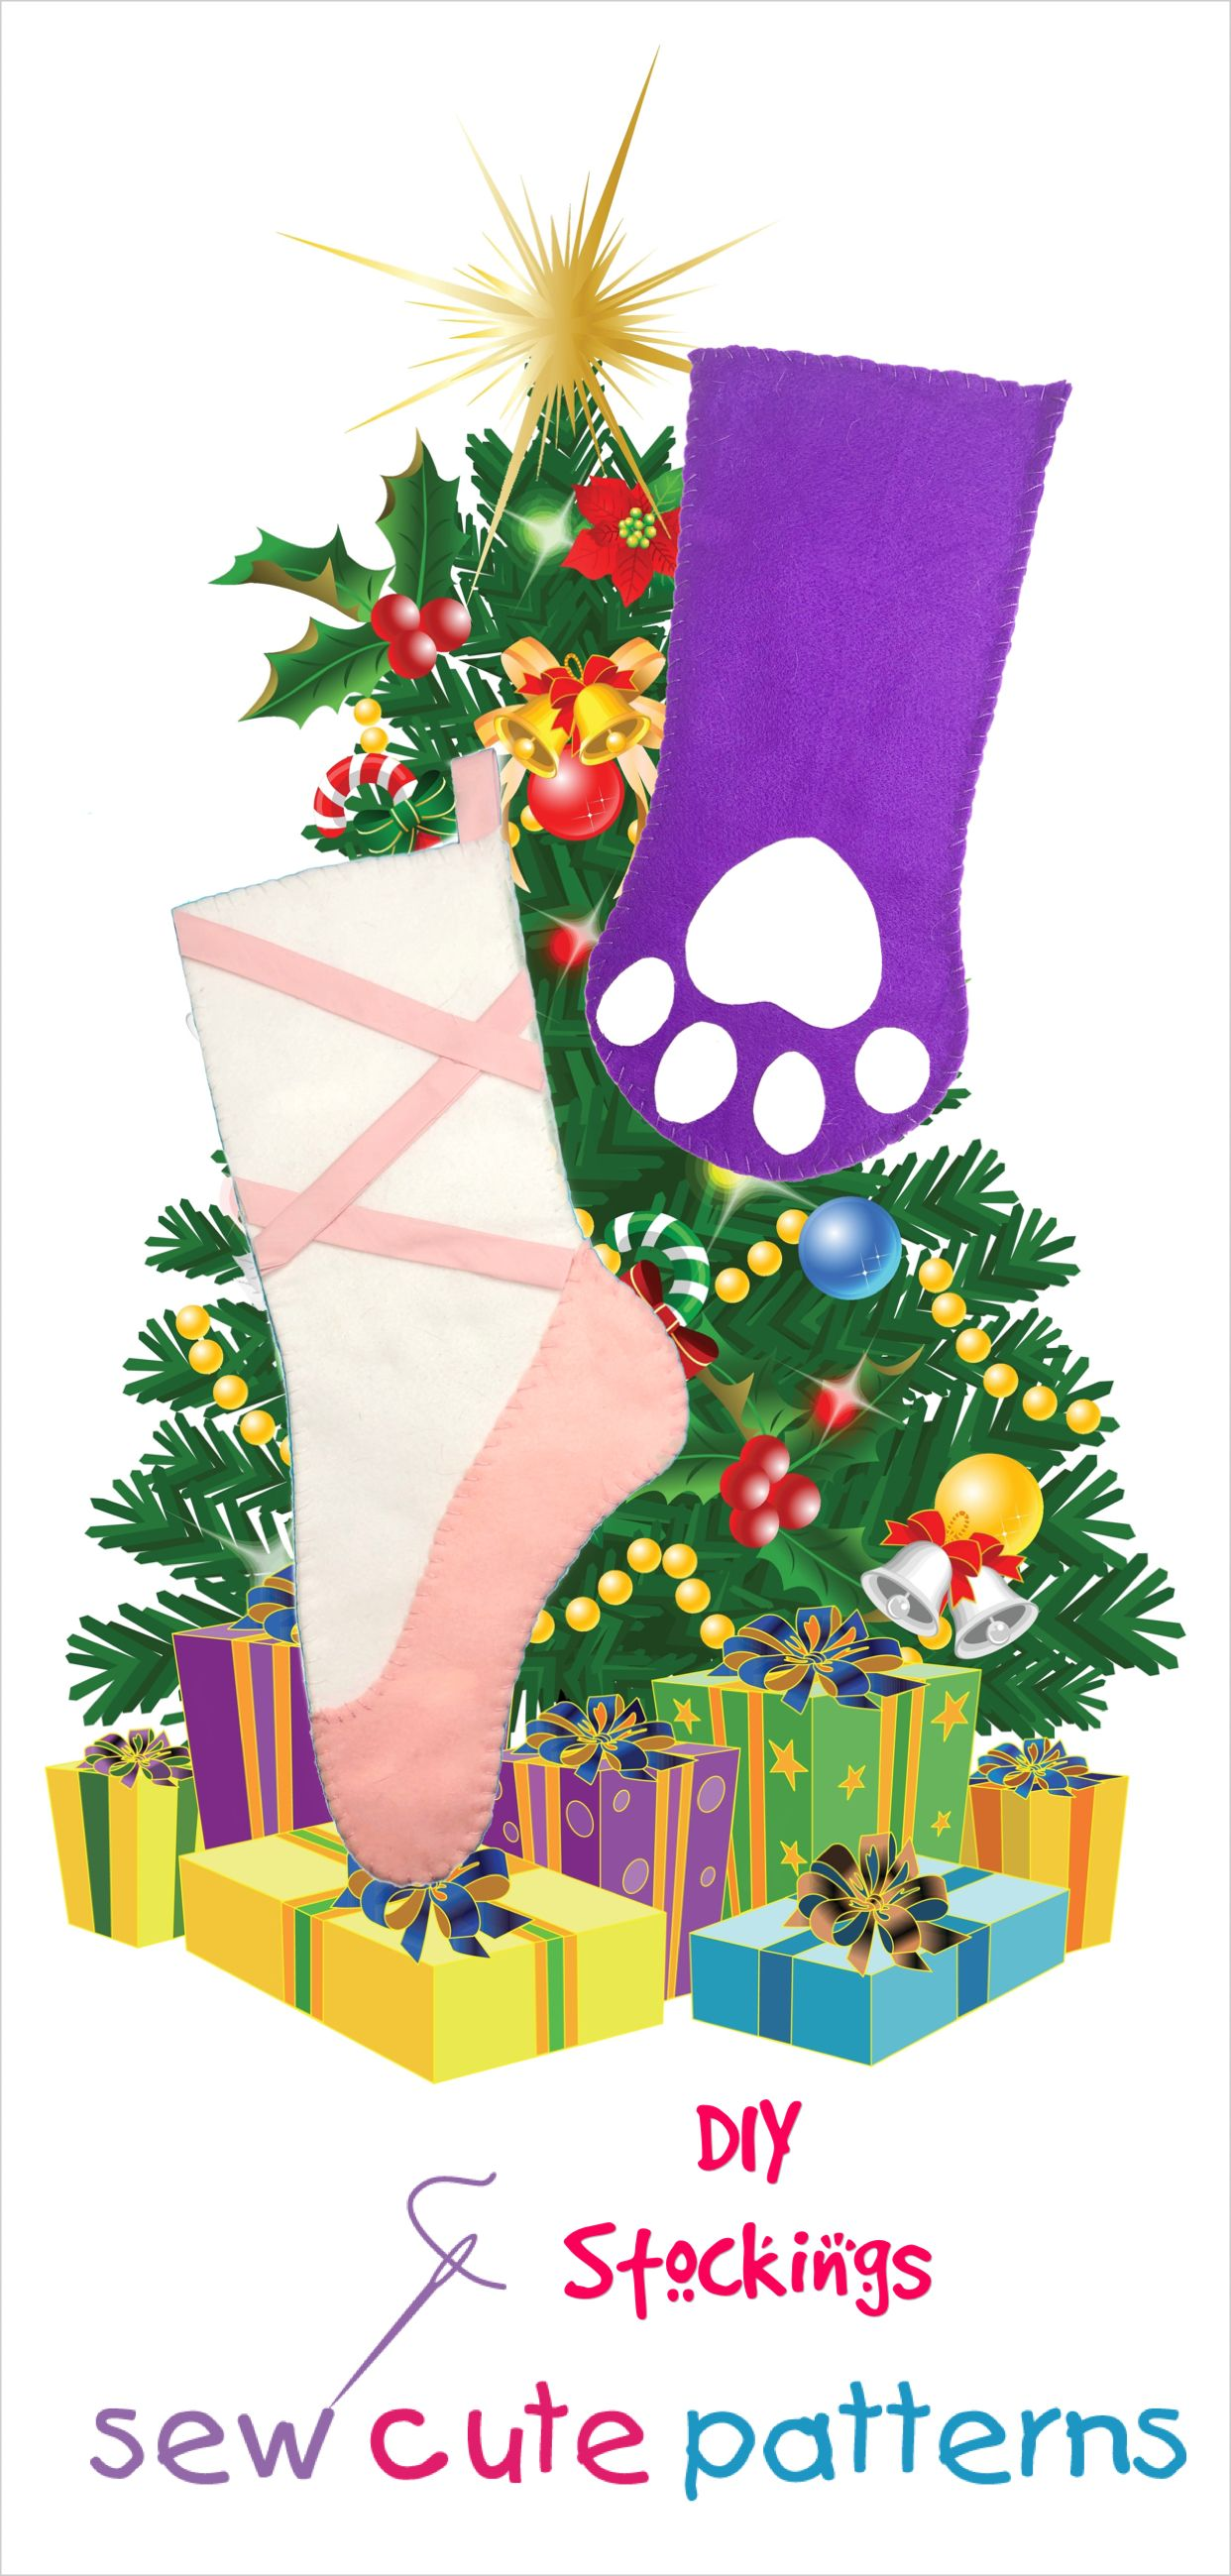 Free Stocking Patterns Stocking pattern, Stocking